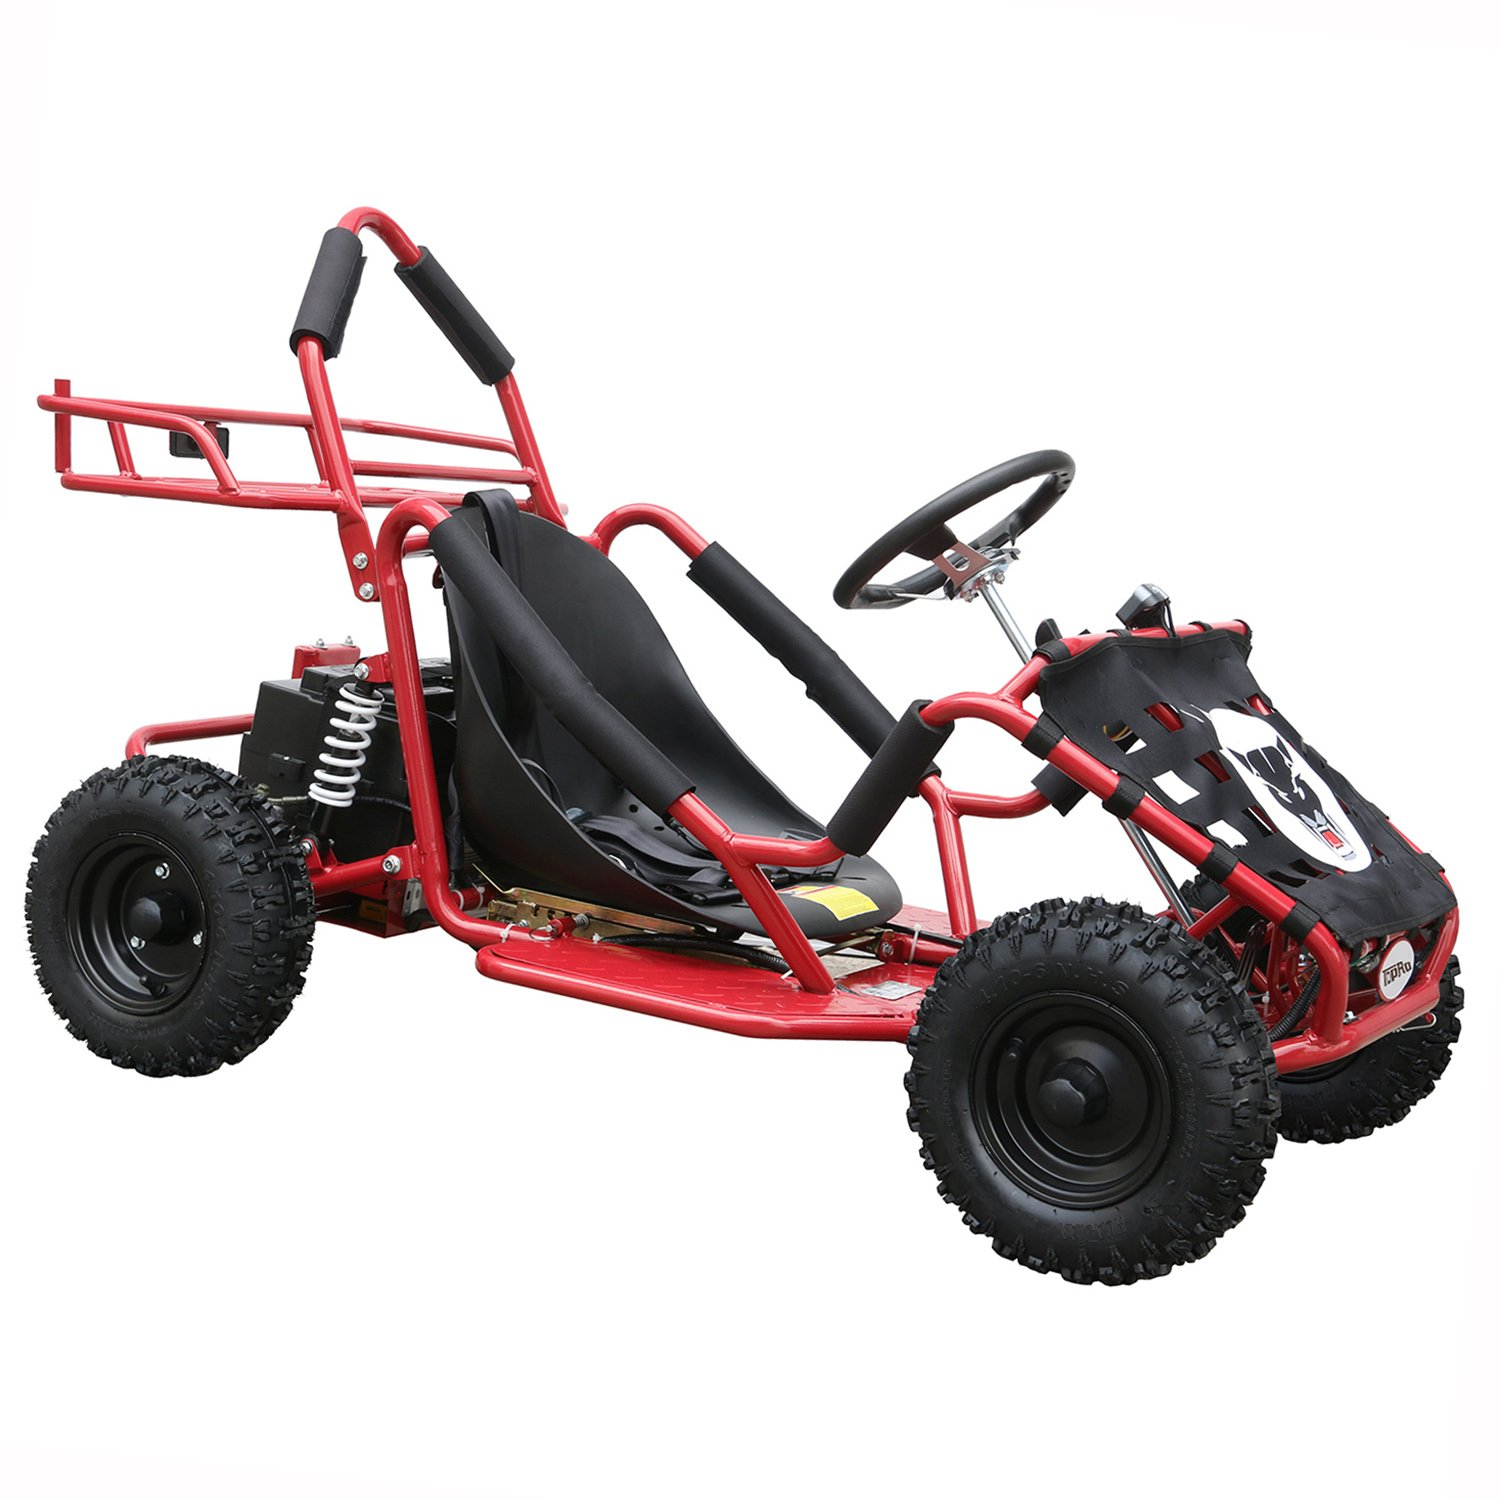 ZXTDR Electric Go Kart Black Friday Deal 2019